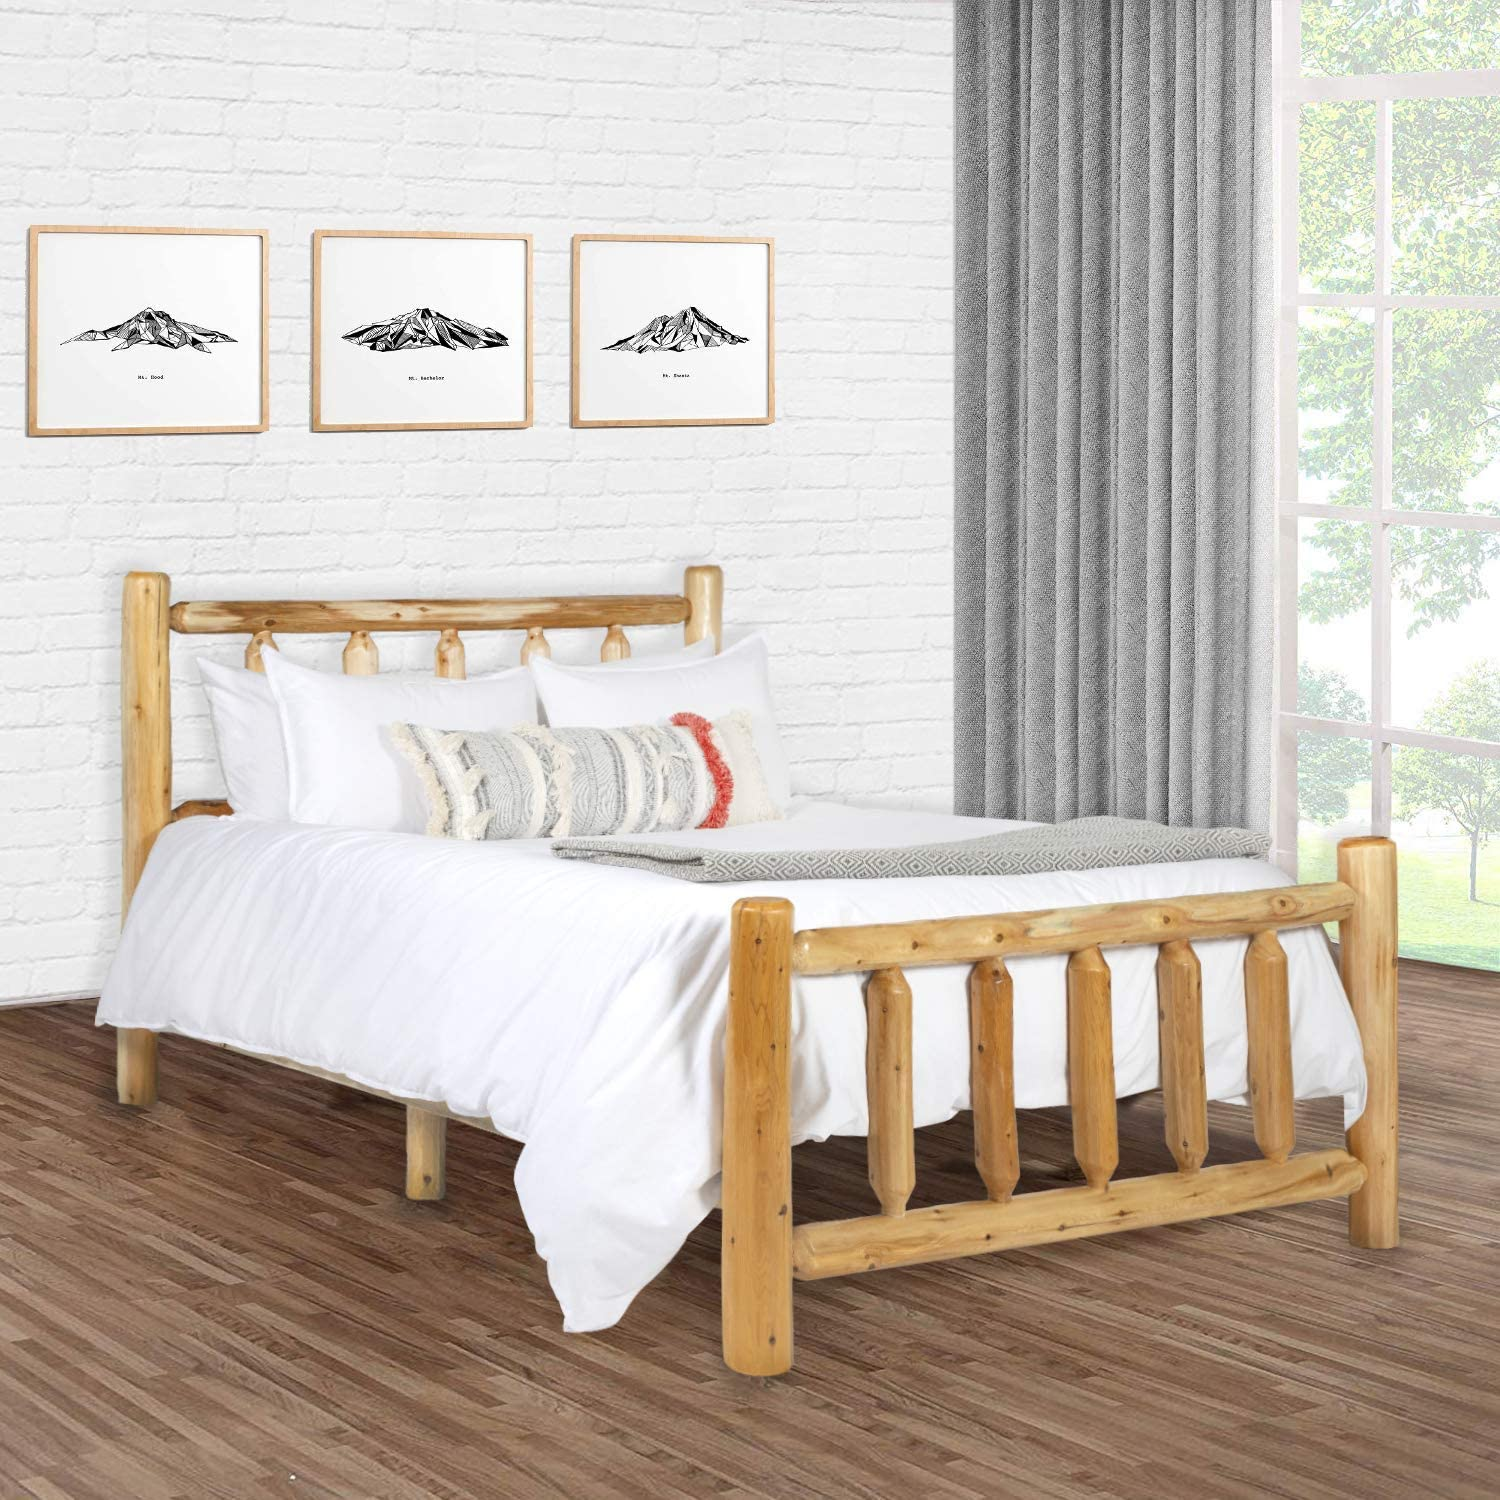 Michigan Rustics Rustic Log Bed Frame